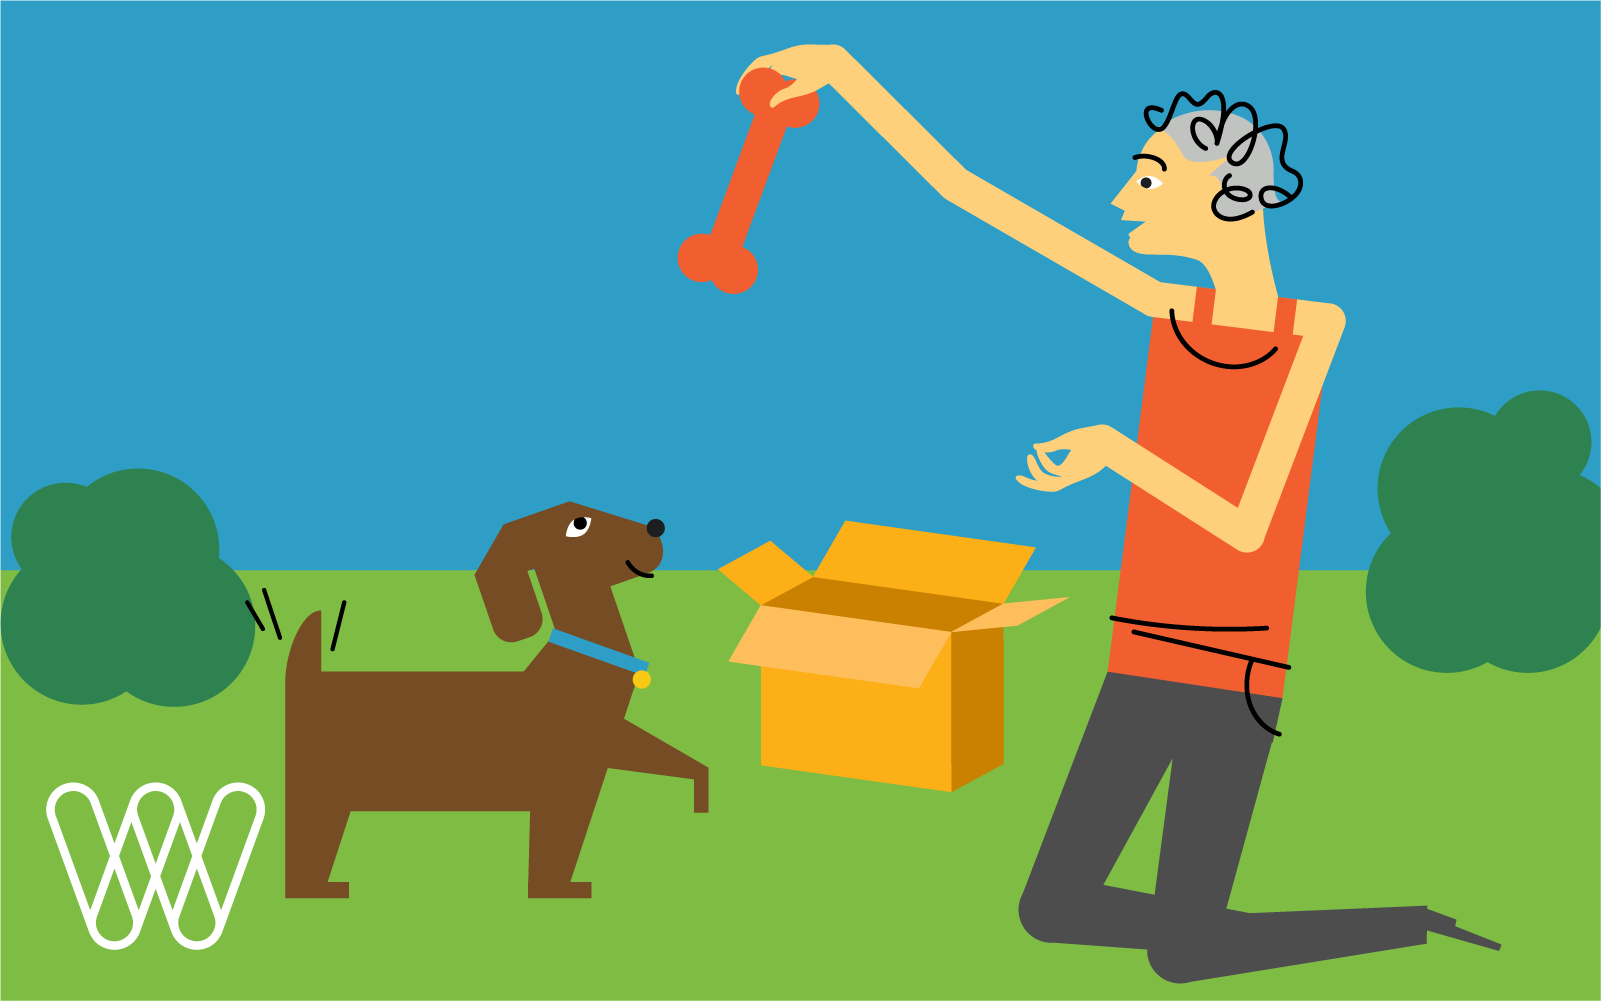 illustration of a person giving their dog a bone taken out of a shipping box